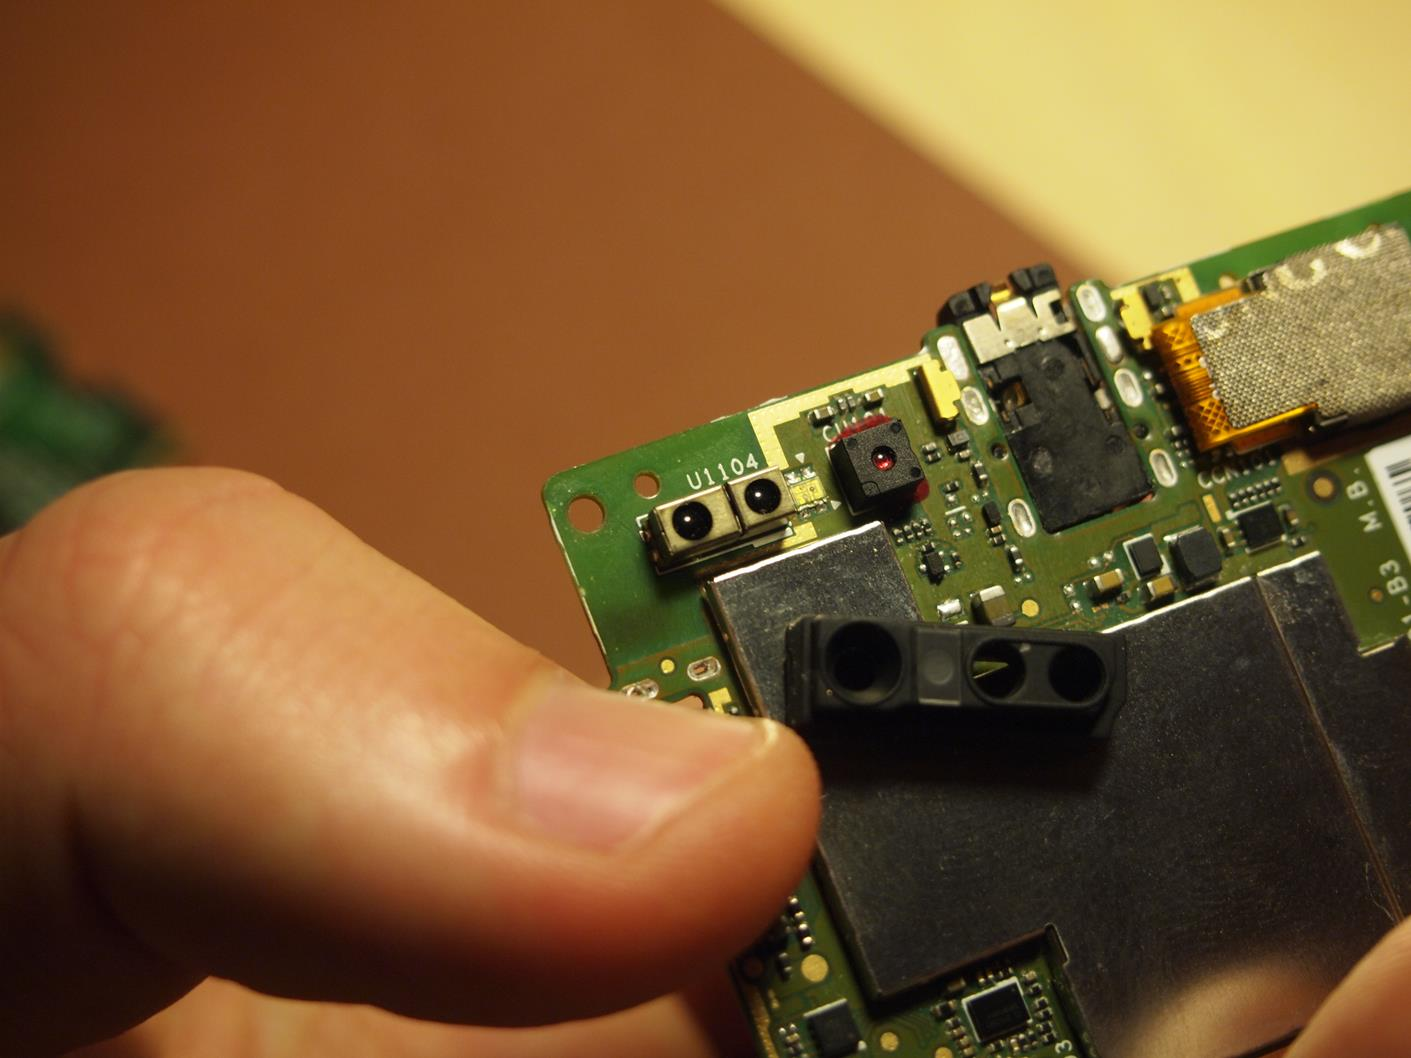 Sony Xperia J Remove And Replace Display Touchscreen The S Circuit Diagram 11 Proximity Sensor Ambient Light